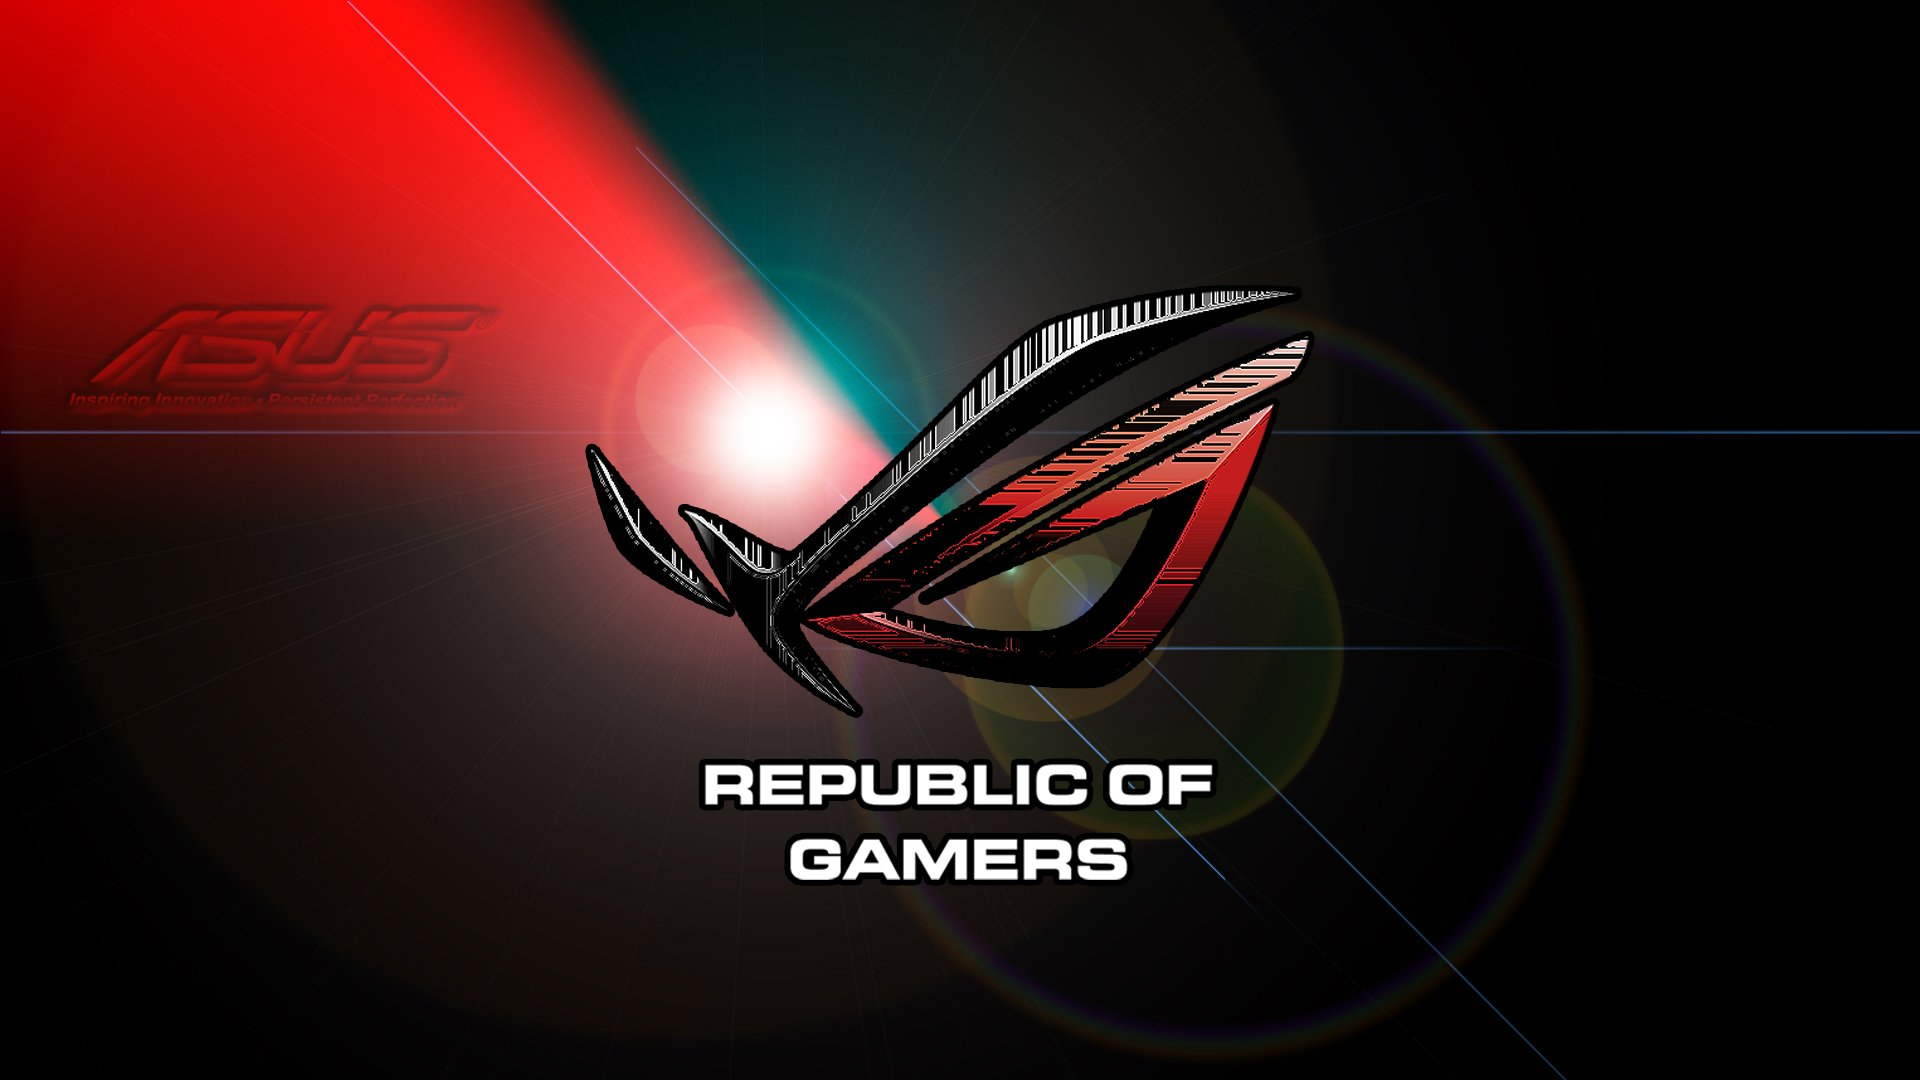 Download Asus Rog Par Sduval Wallpaper Full HD Wallpapers 1920x1080